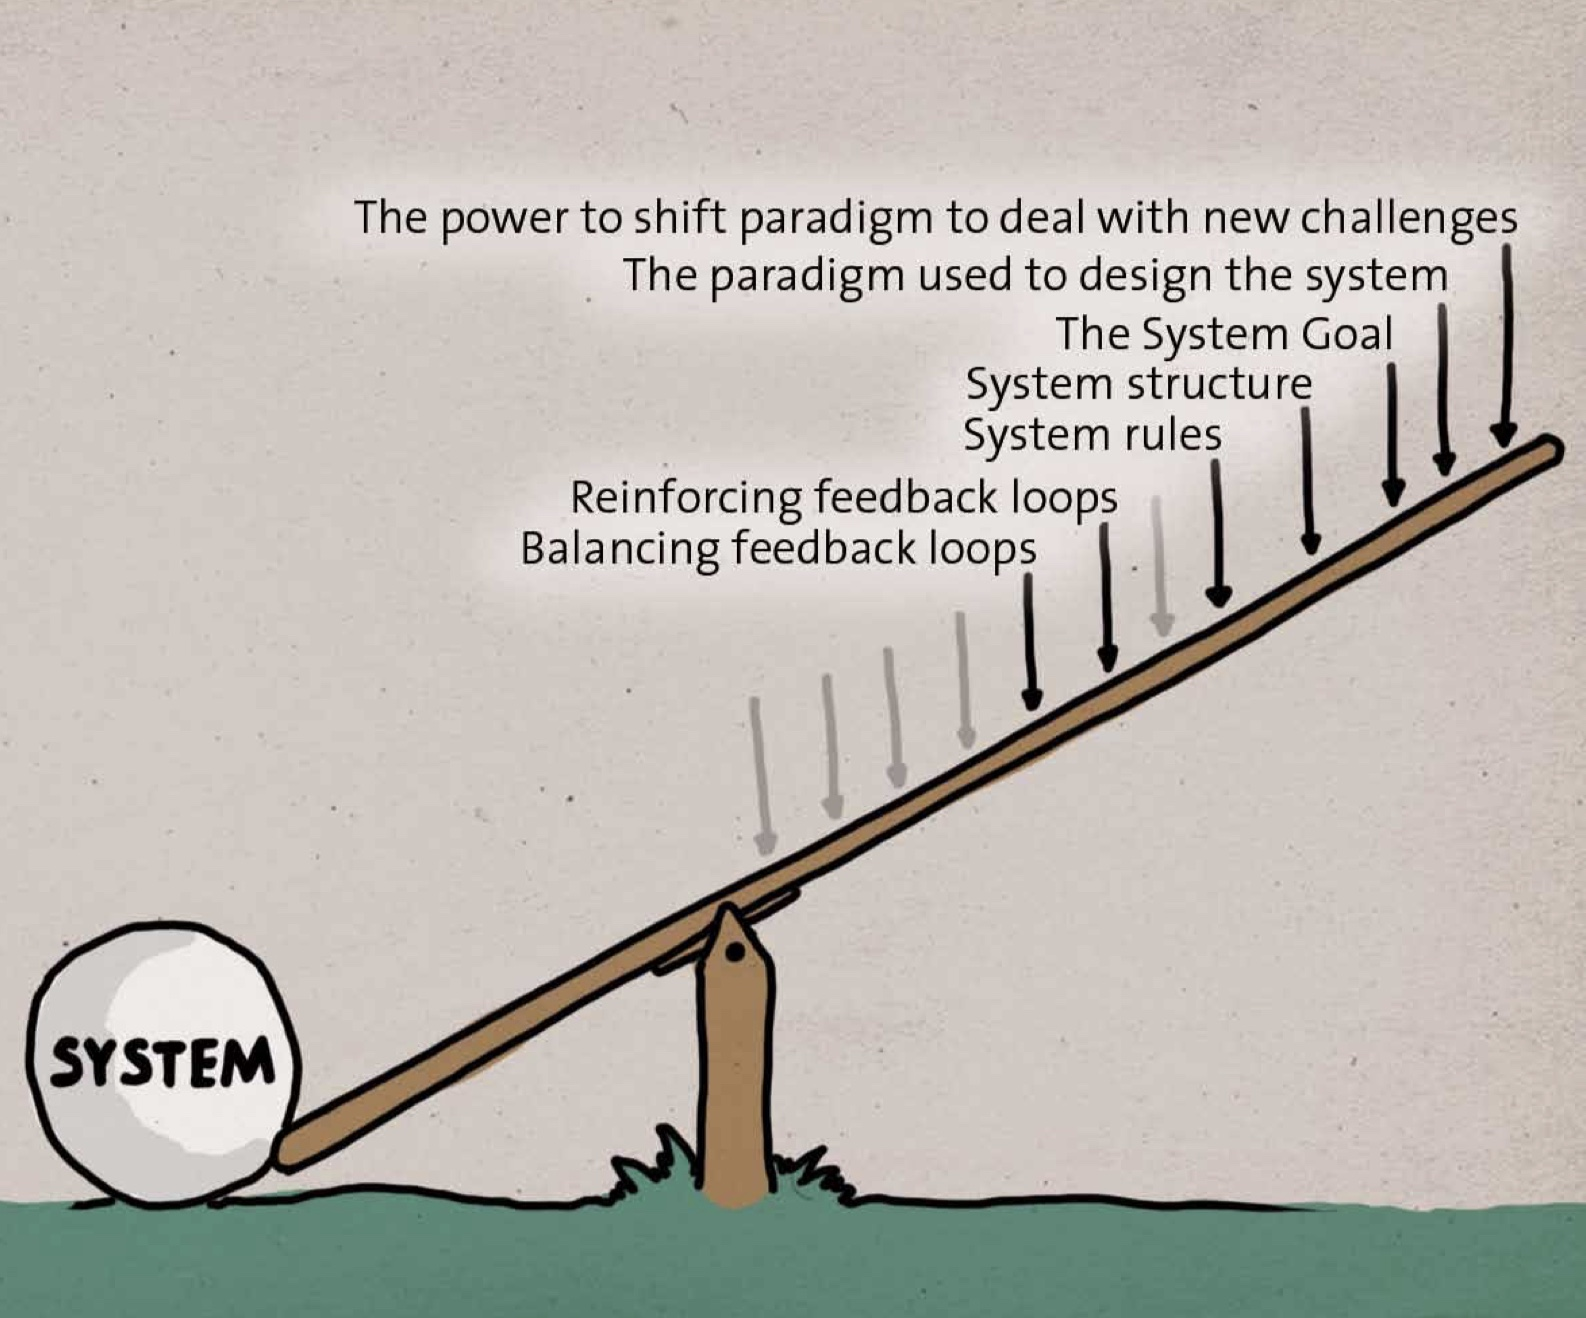 image of a lever, with a boulder labeled system at one end and on the other end a series of actions that could potentially create change in the system, in order of how likely they are to create change as indicated in the image by their position on the lever. The closer to the center of the seesaw, the less leverage the action has.